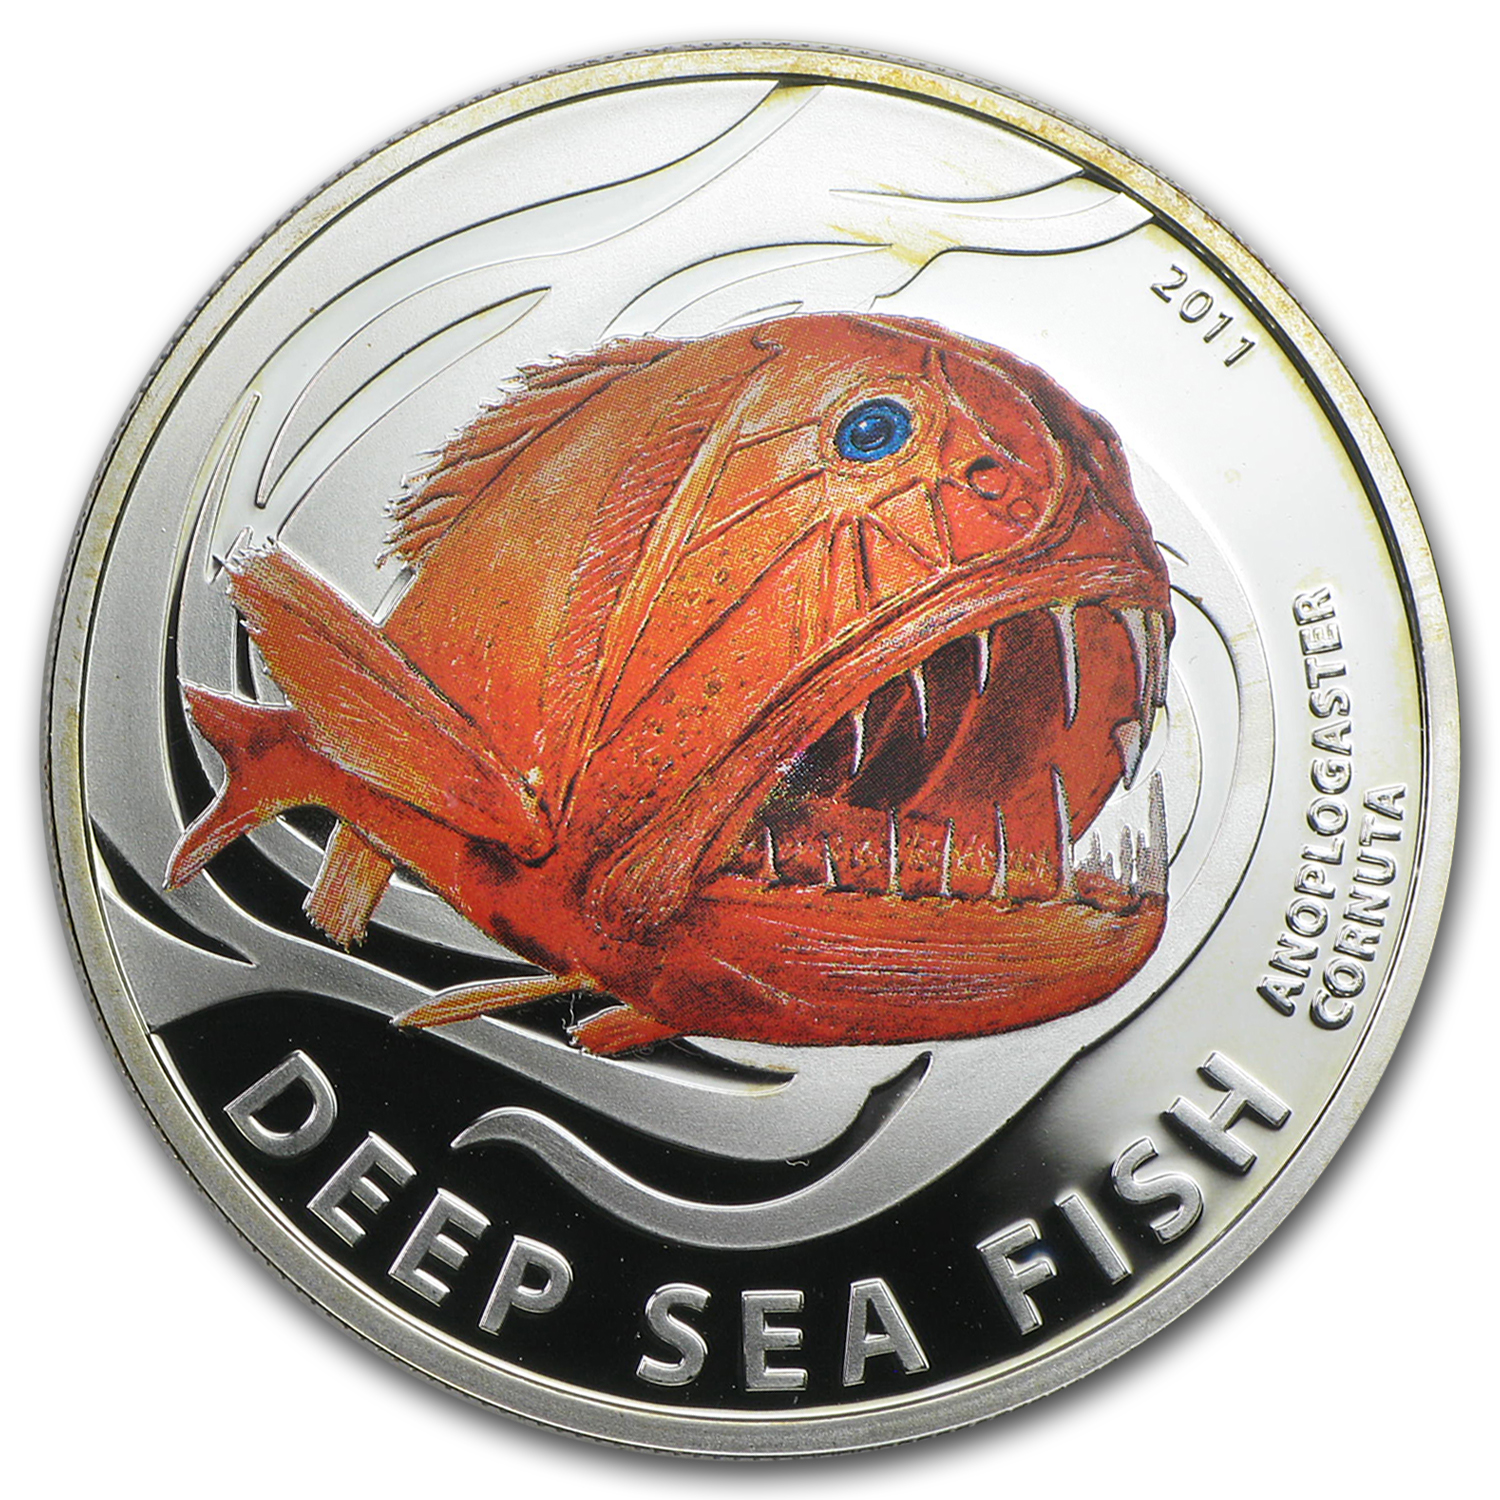 2011 Pitcairn Islands Silver Deep Sea Fish Anoplogaster Cornuta